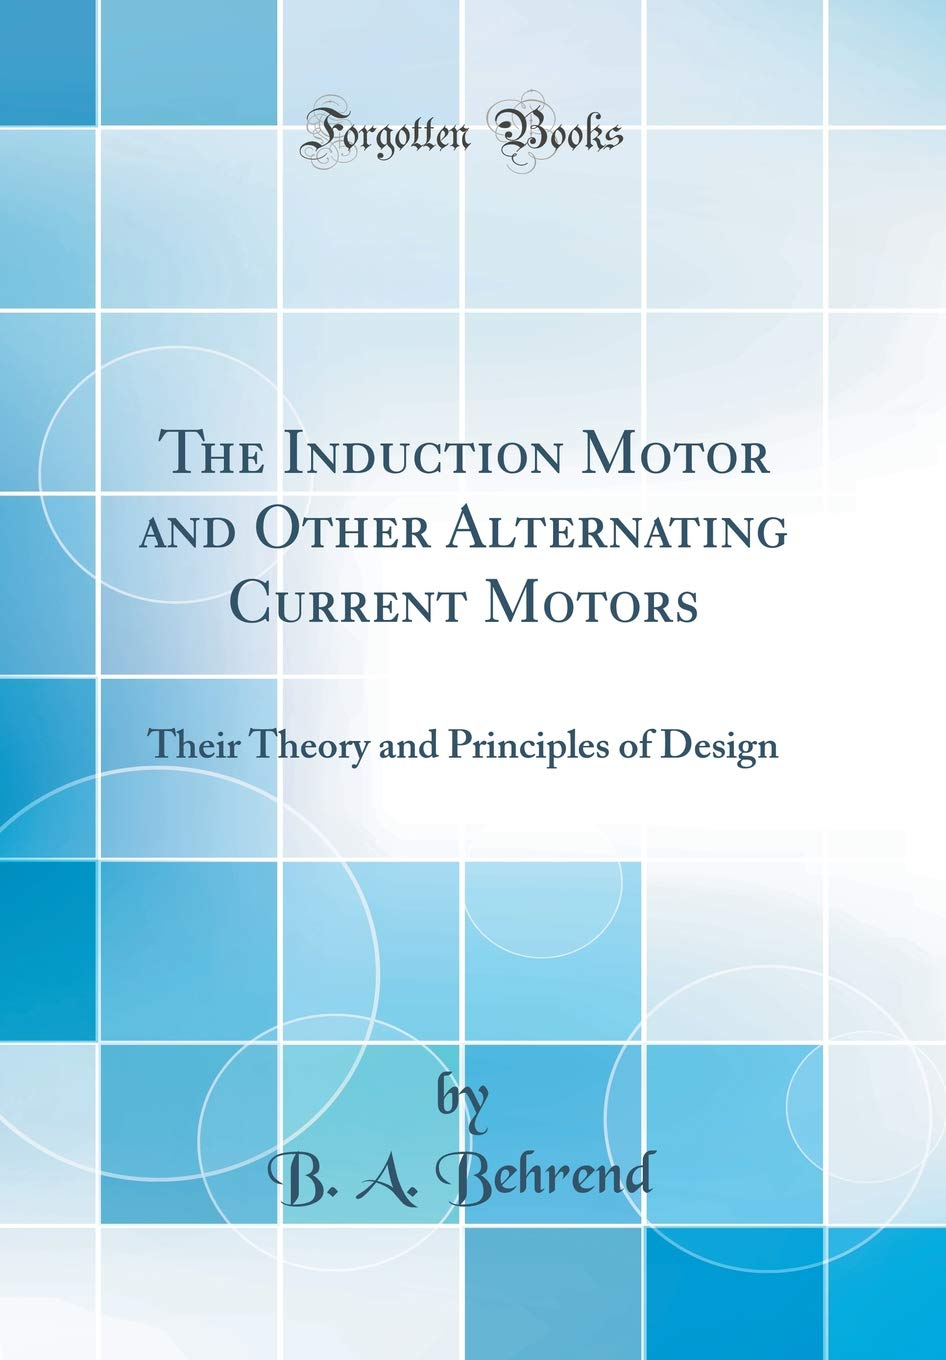 The Induction Motor and Other Alternating Current Motors